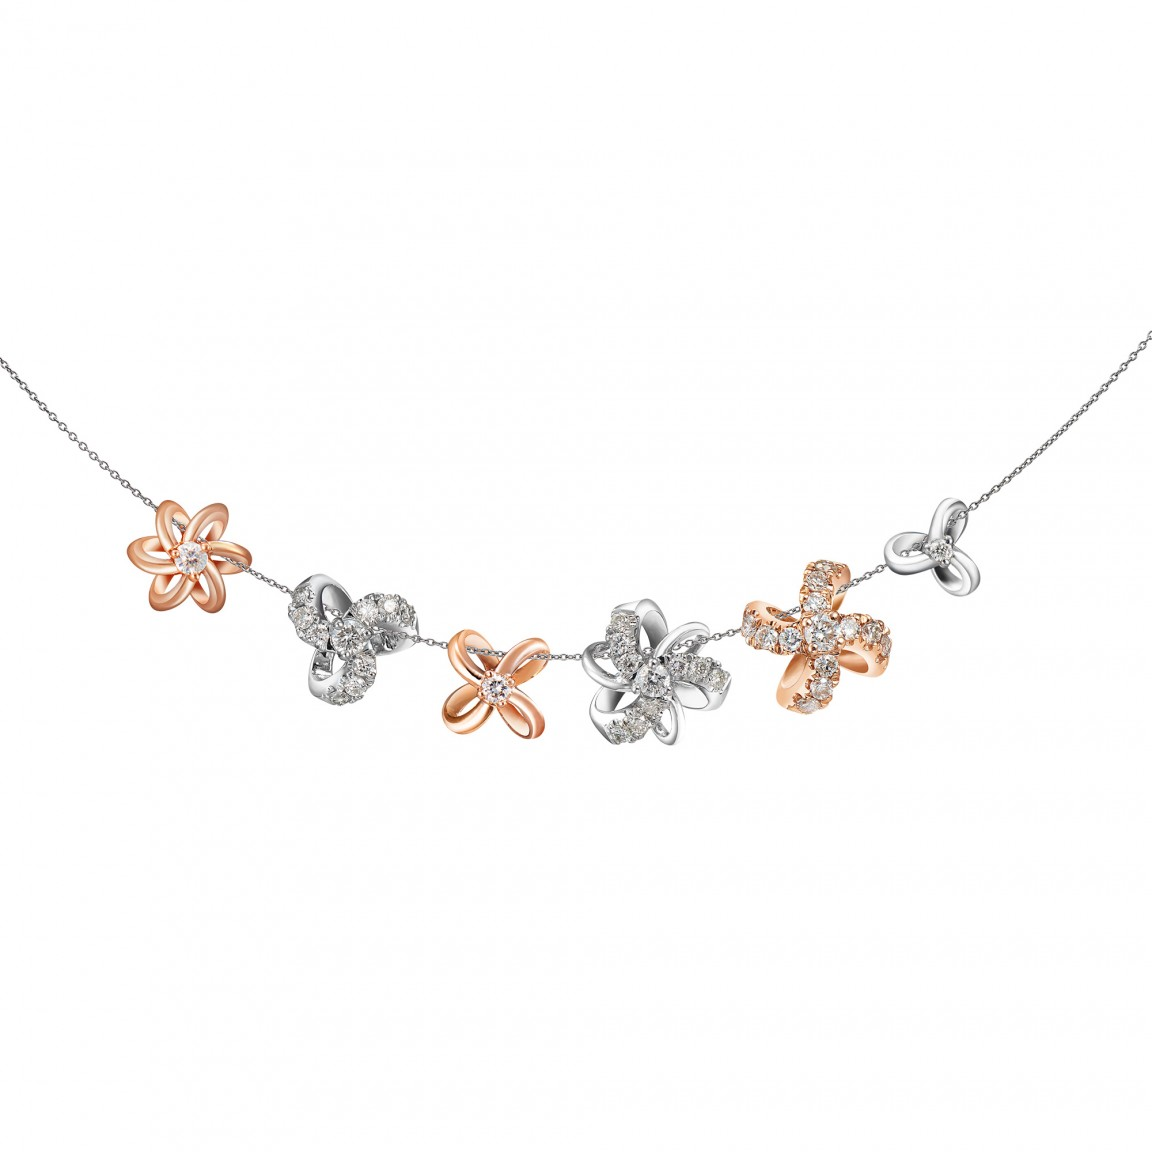 Astra Charms Necklace